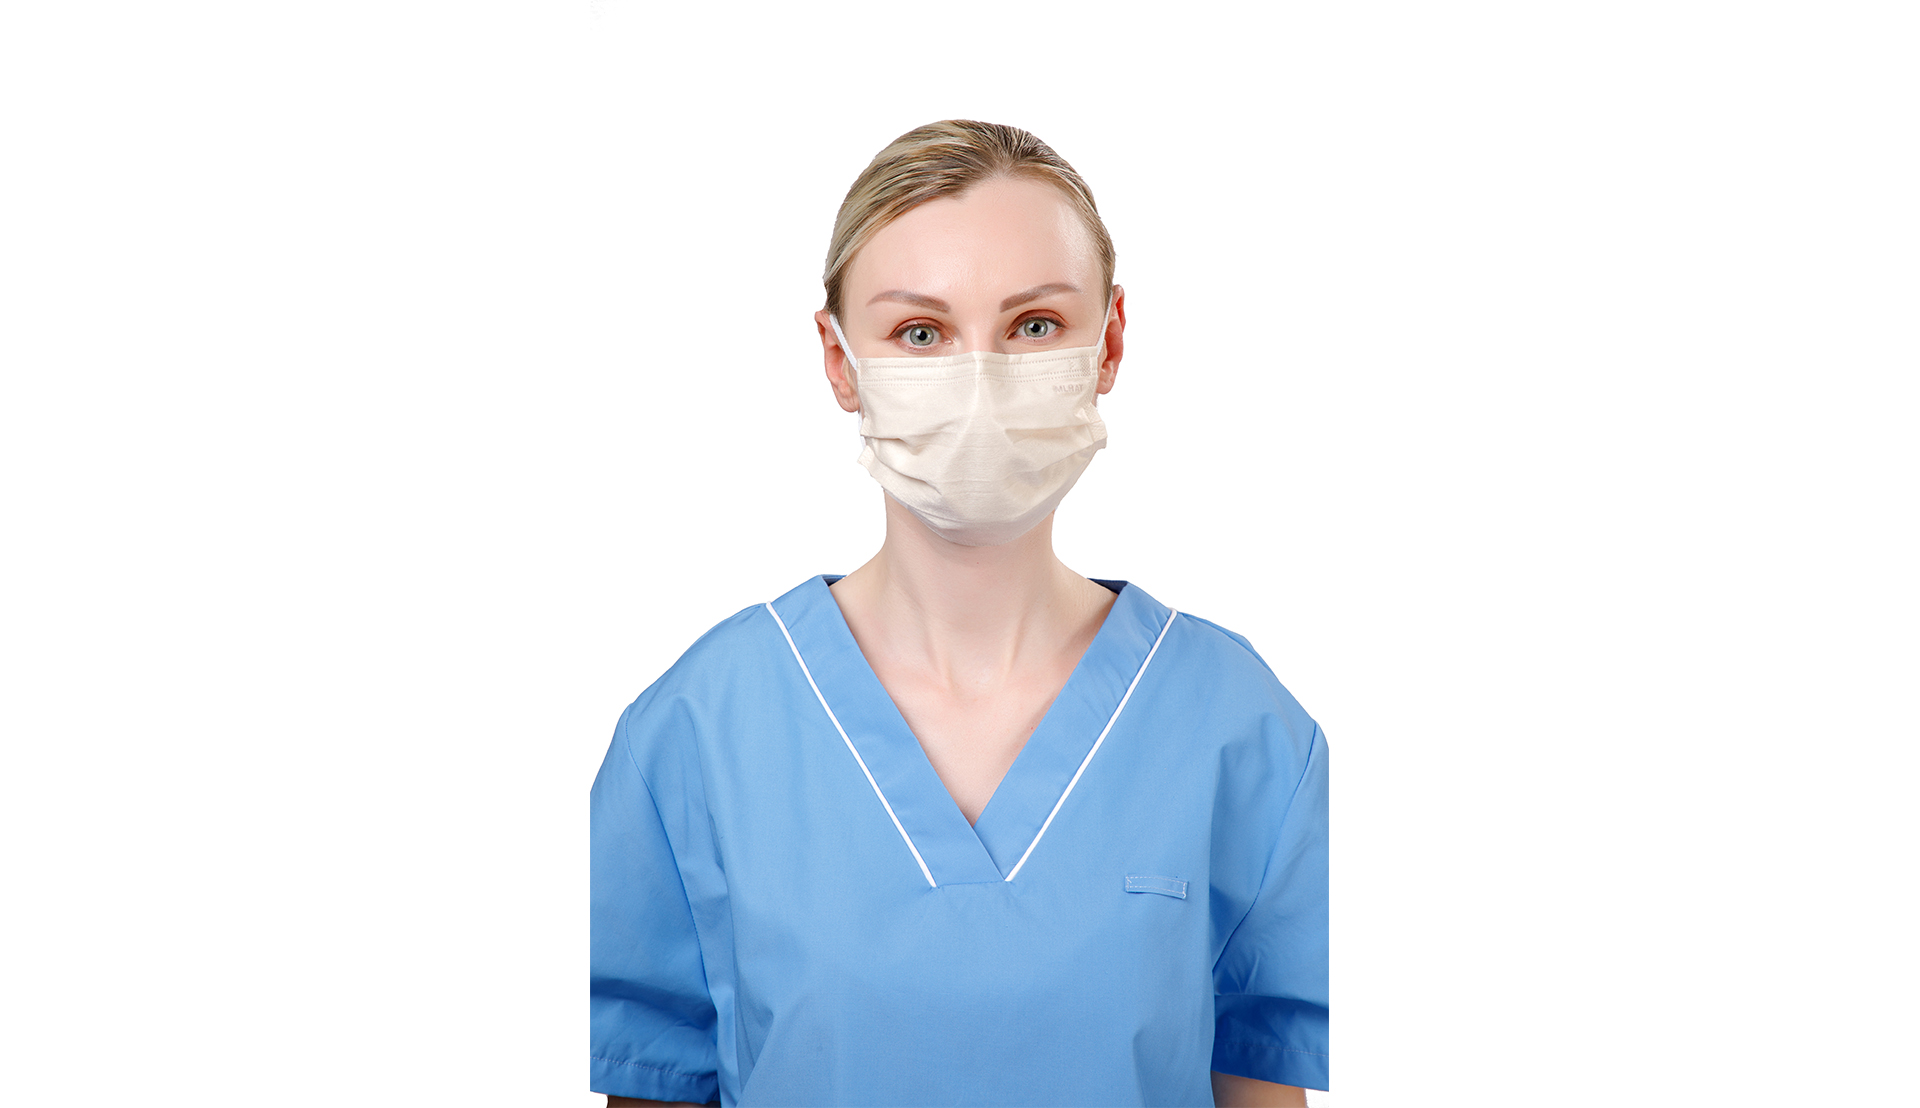 ASTM F2100 LEVEL 3 Surgical Mask with Ear Loops